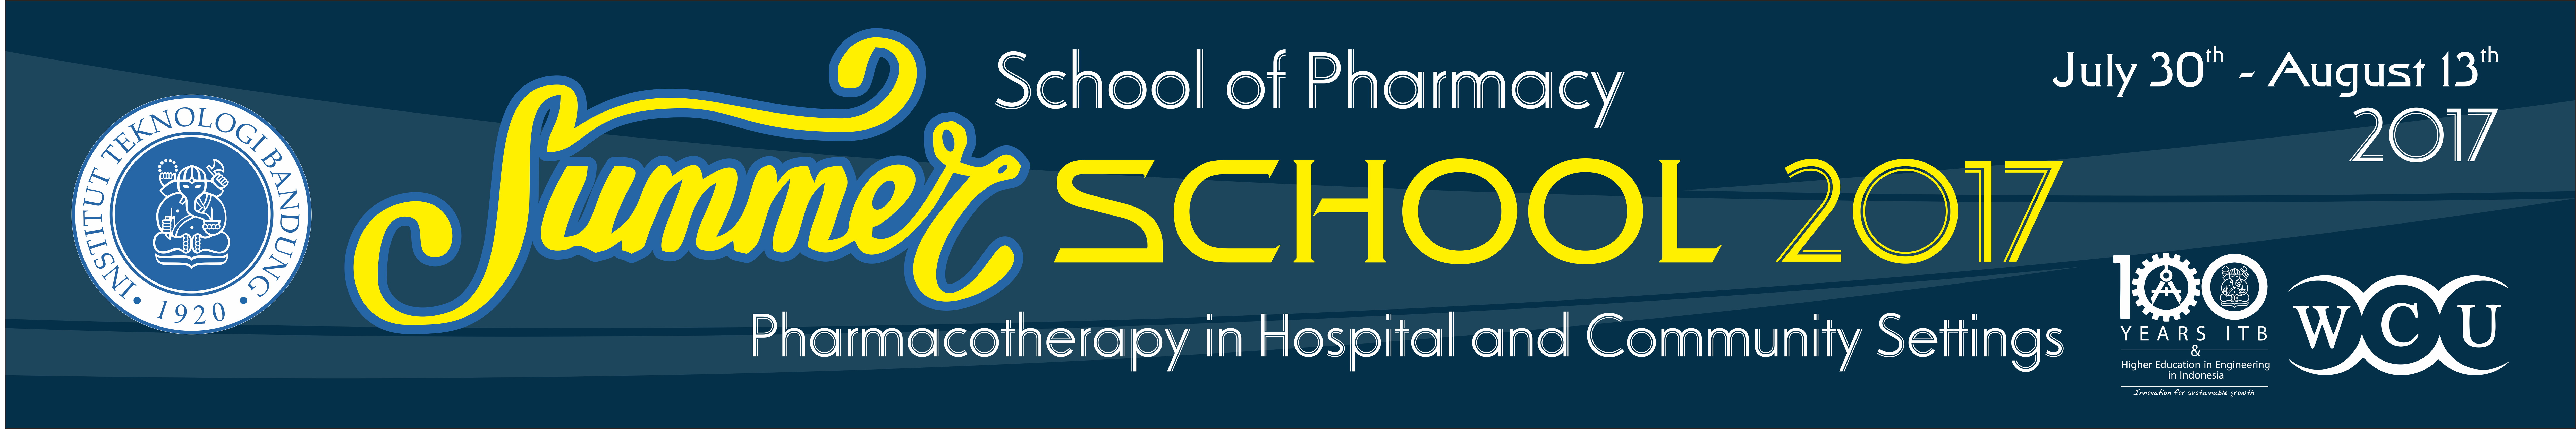 Upcoming event summer school school of pharmacy itb sekolah farmasi the school of pharmacy institut teknologi bandung itb is proudly organizing the summer school 2017 themed pharmacotherapy in the hospital and community malvernweather Choice Image